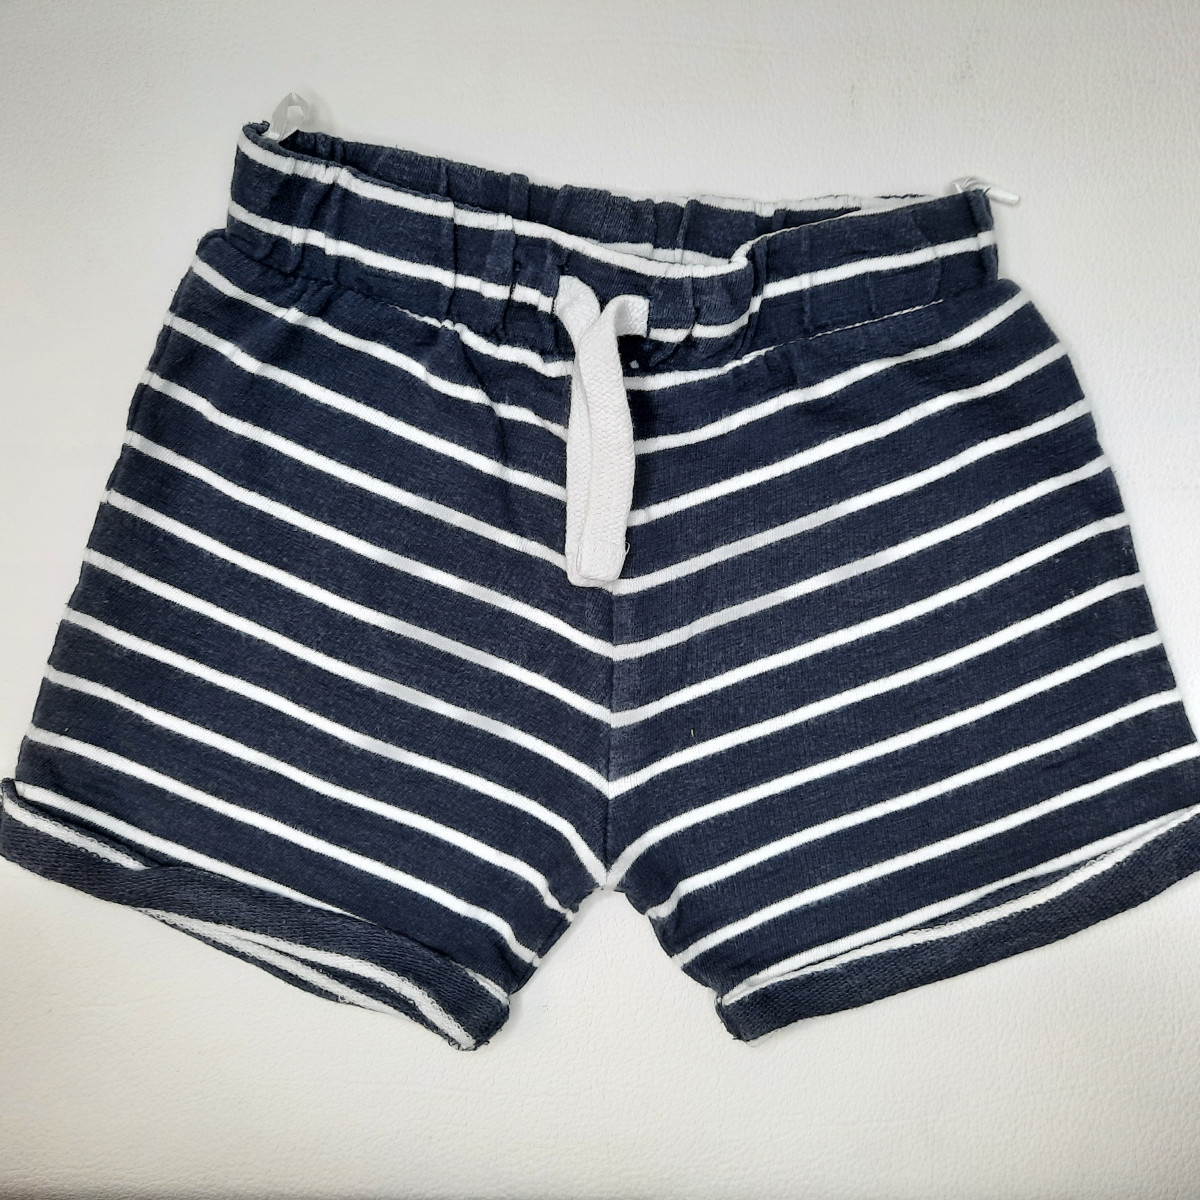 Shorts, Bermudas - photo 38